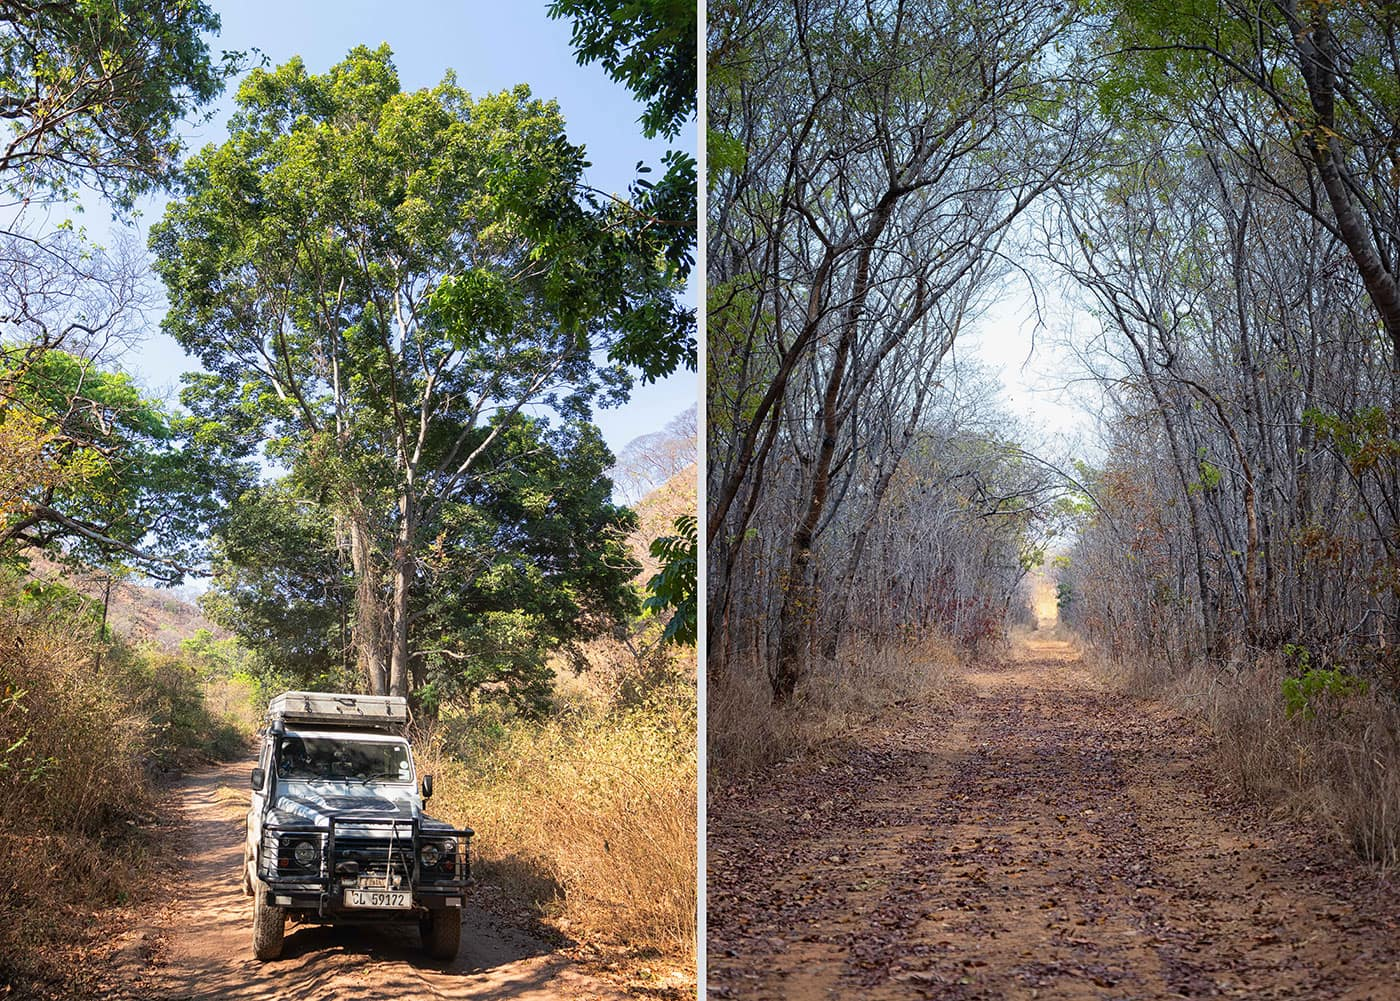 Johann Groenewald - Chizarira National Park - newly graded roads